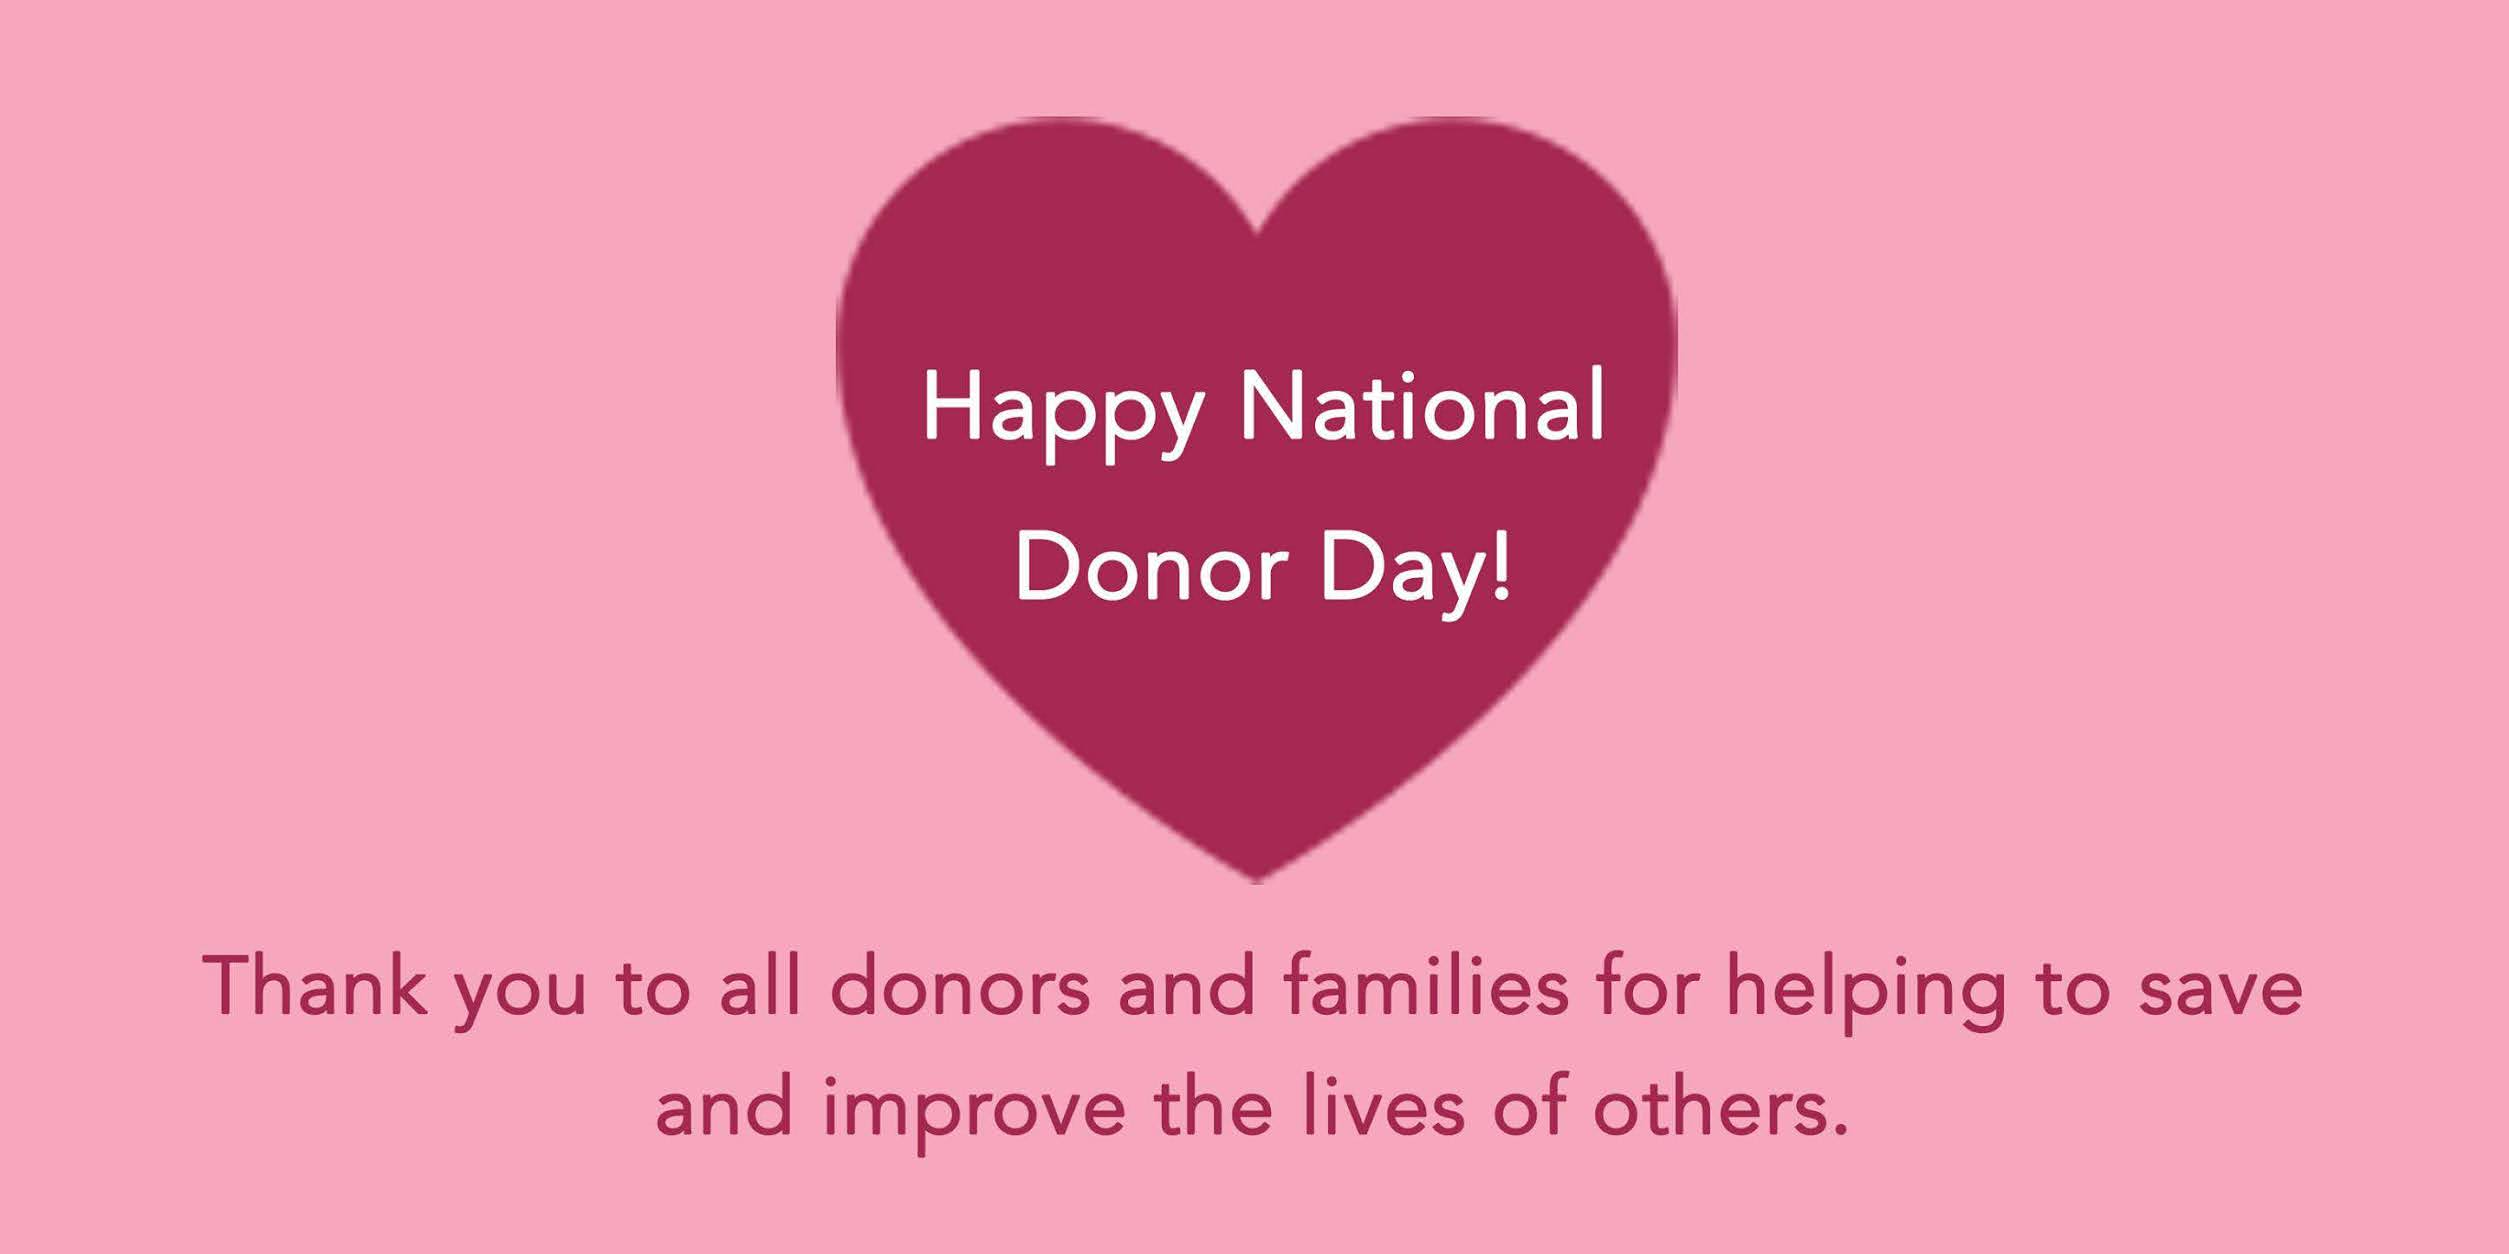 National Donor Day Wishes For Facebook